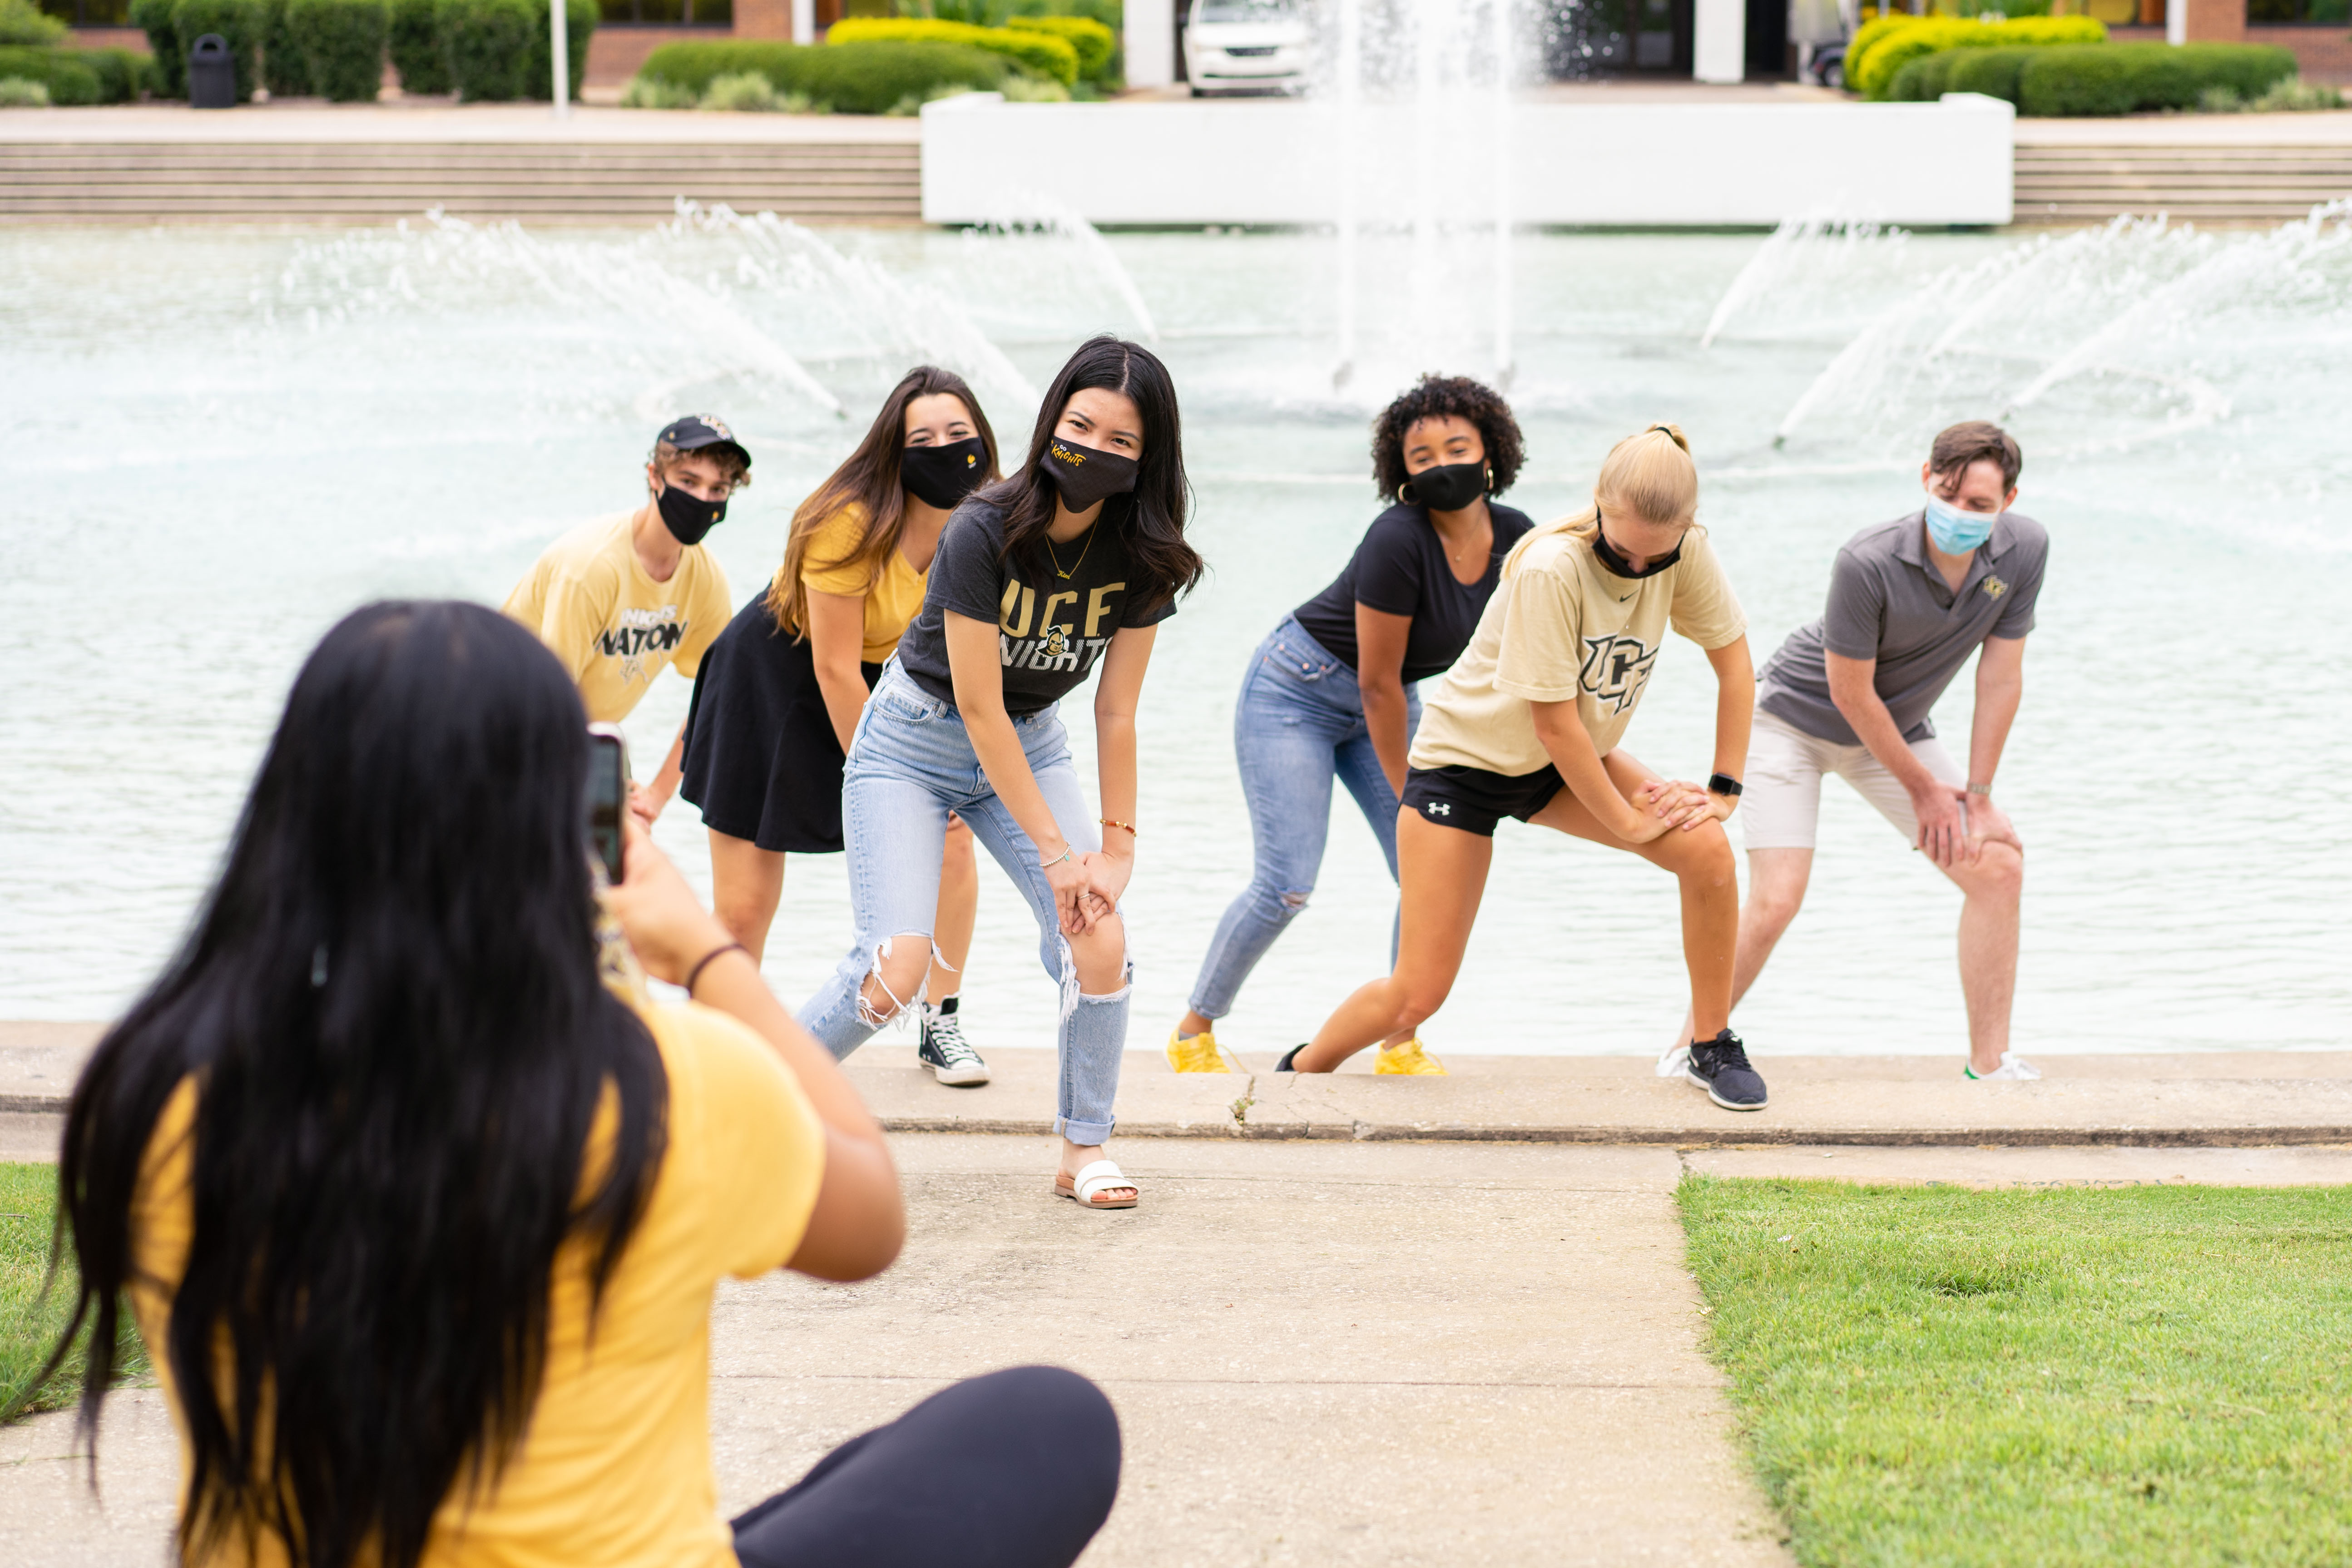 UCF social media ambassadors join a social media shoot in front of the university's Reflecting Pond